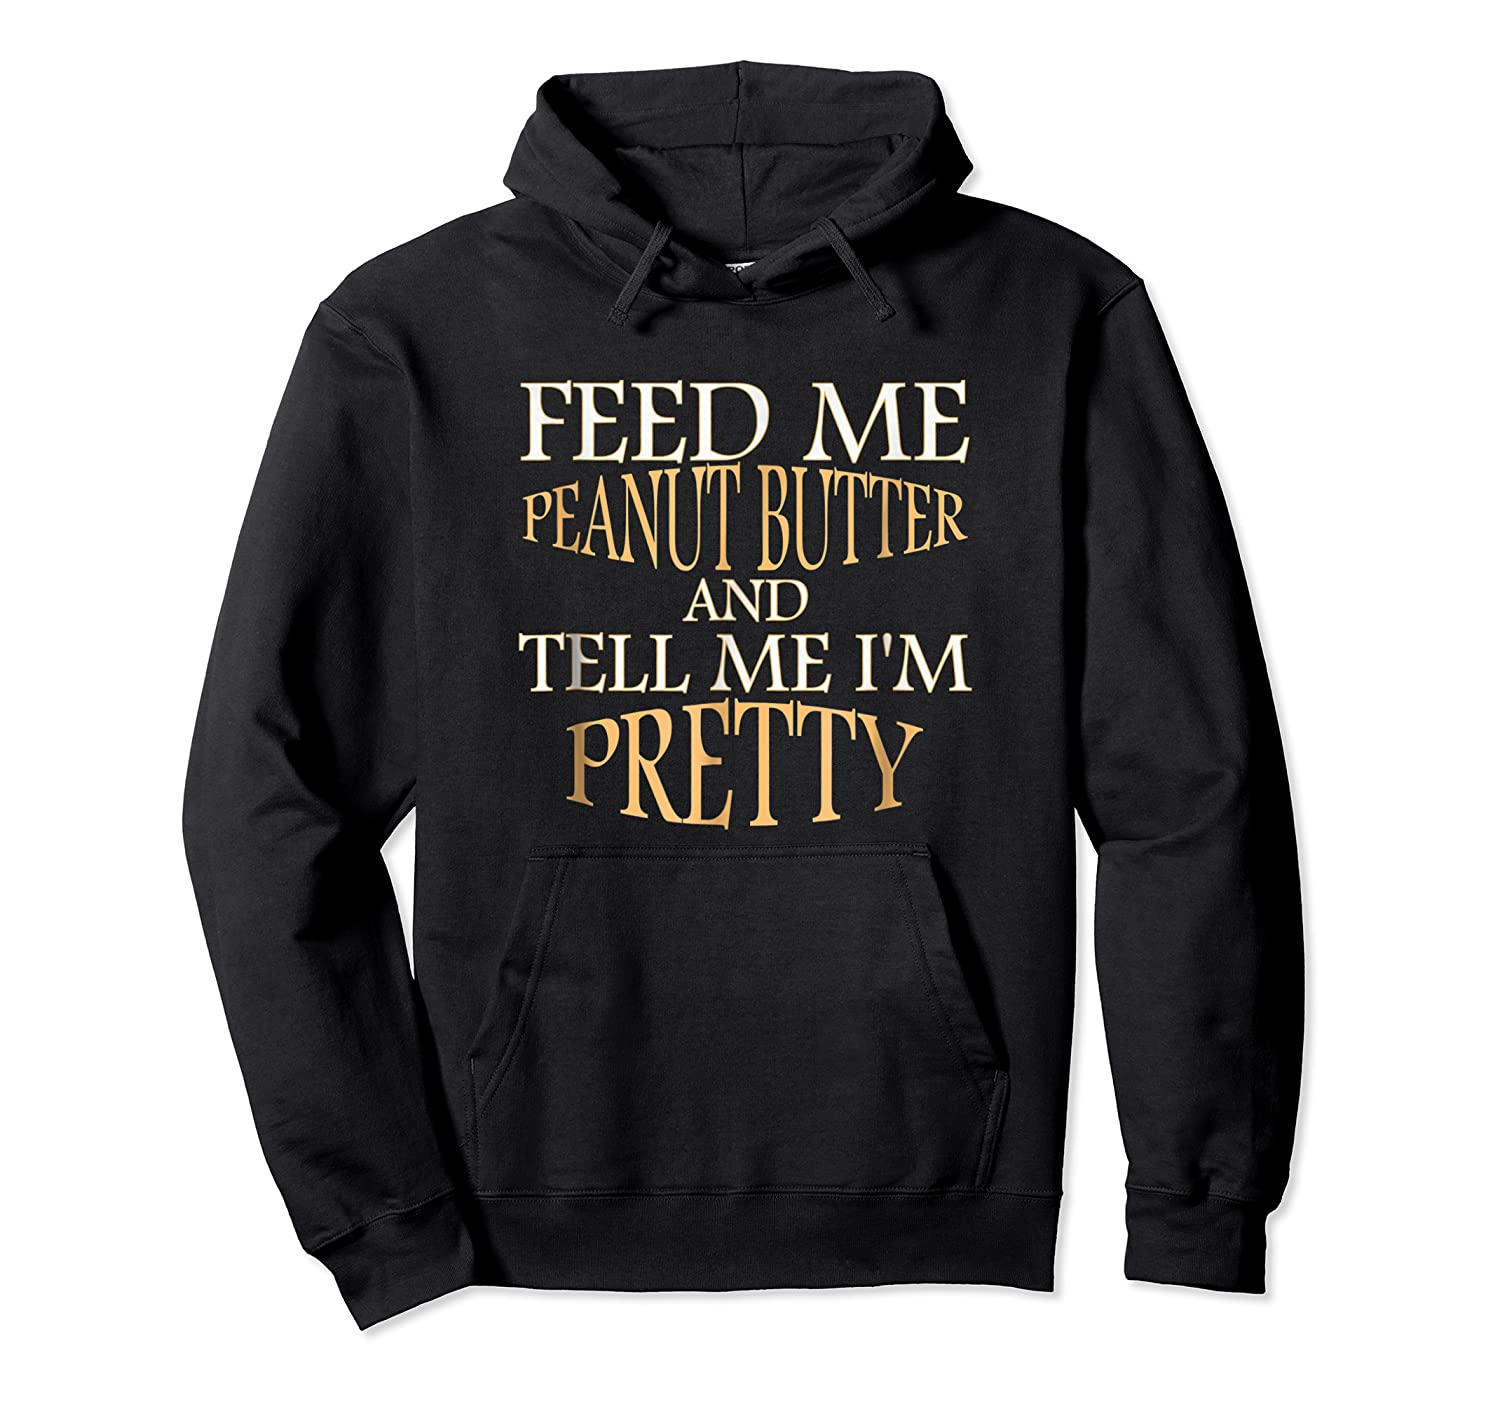 Feed Me Peanut Butter And Tell Me I M Pretty Funny Tshirt Unisex Pullover Hoodie